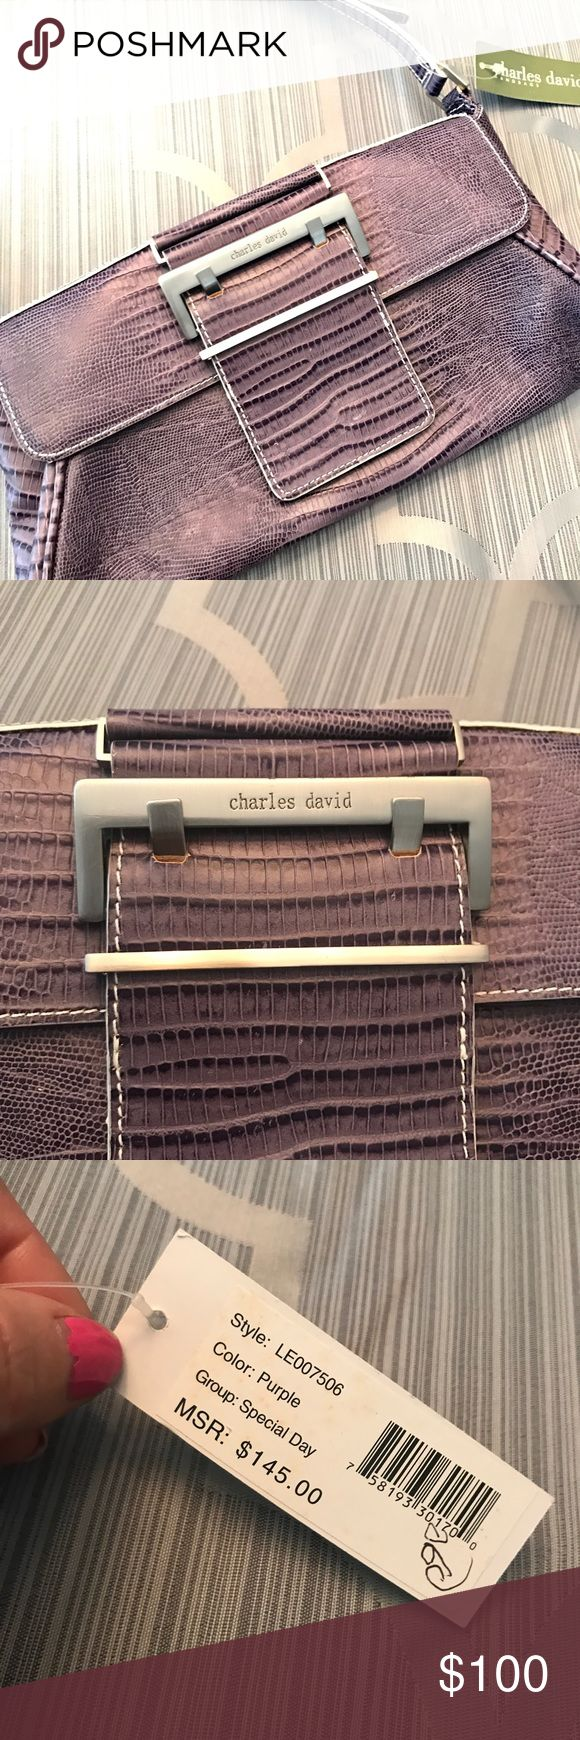 Charles David Purse Shoulder Bag Special Bag Charles David Purse Shoulder Bag Special Bag Purple there is an imperfection on handle. See photo. Other listing un that bag is great new with tags Charles David Bags